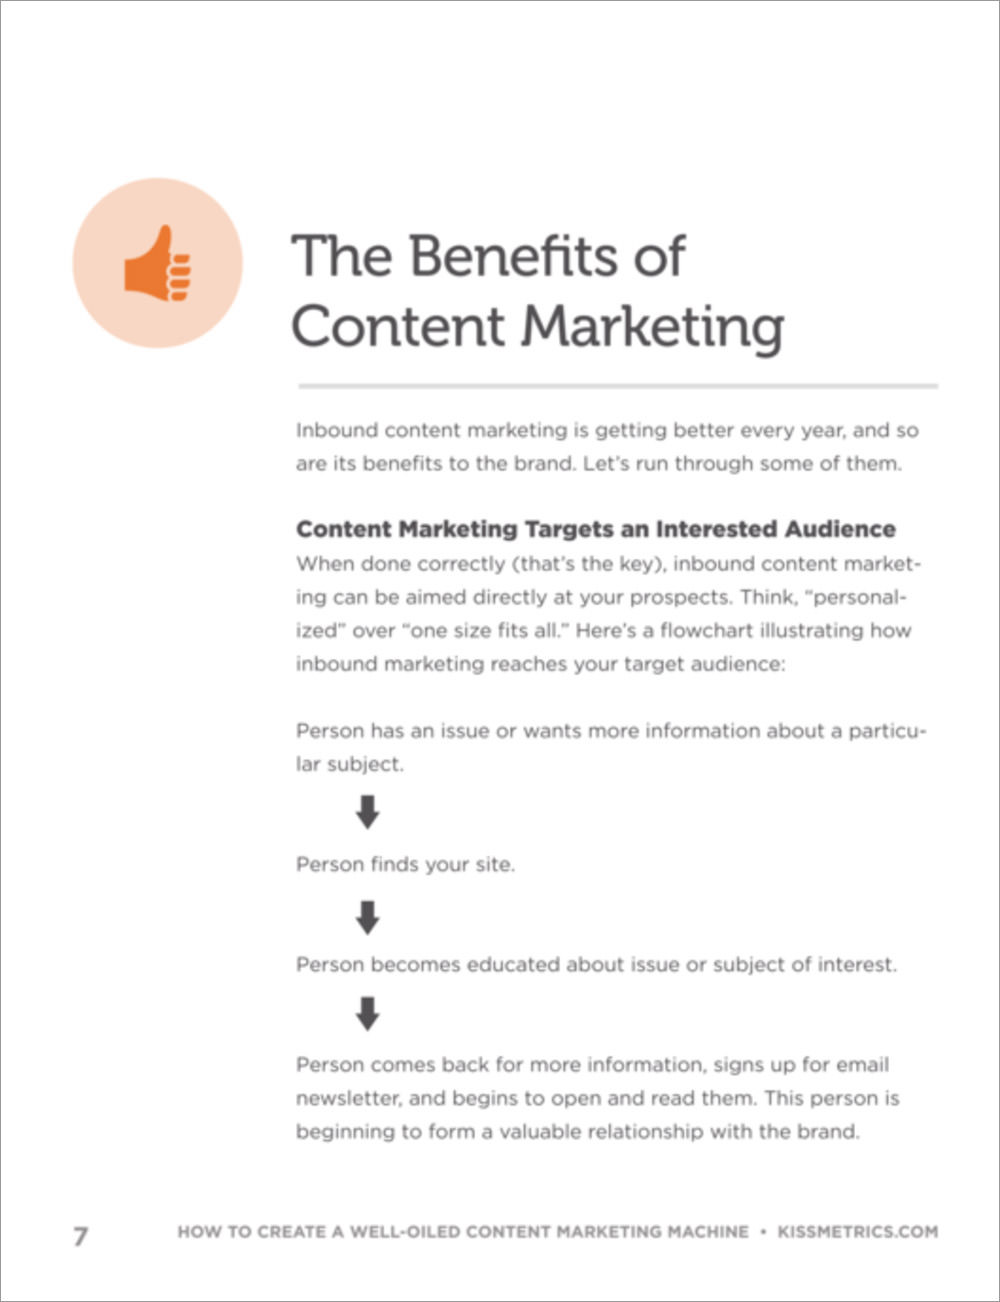 Create A Well-Oiled Content Marketing Machine